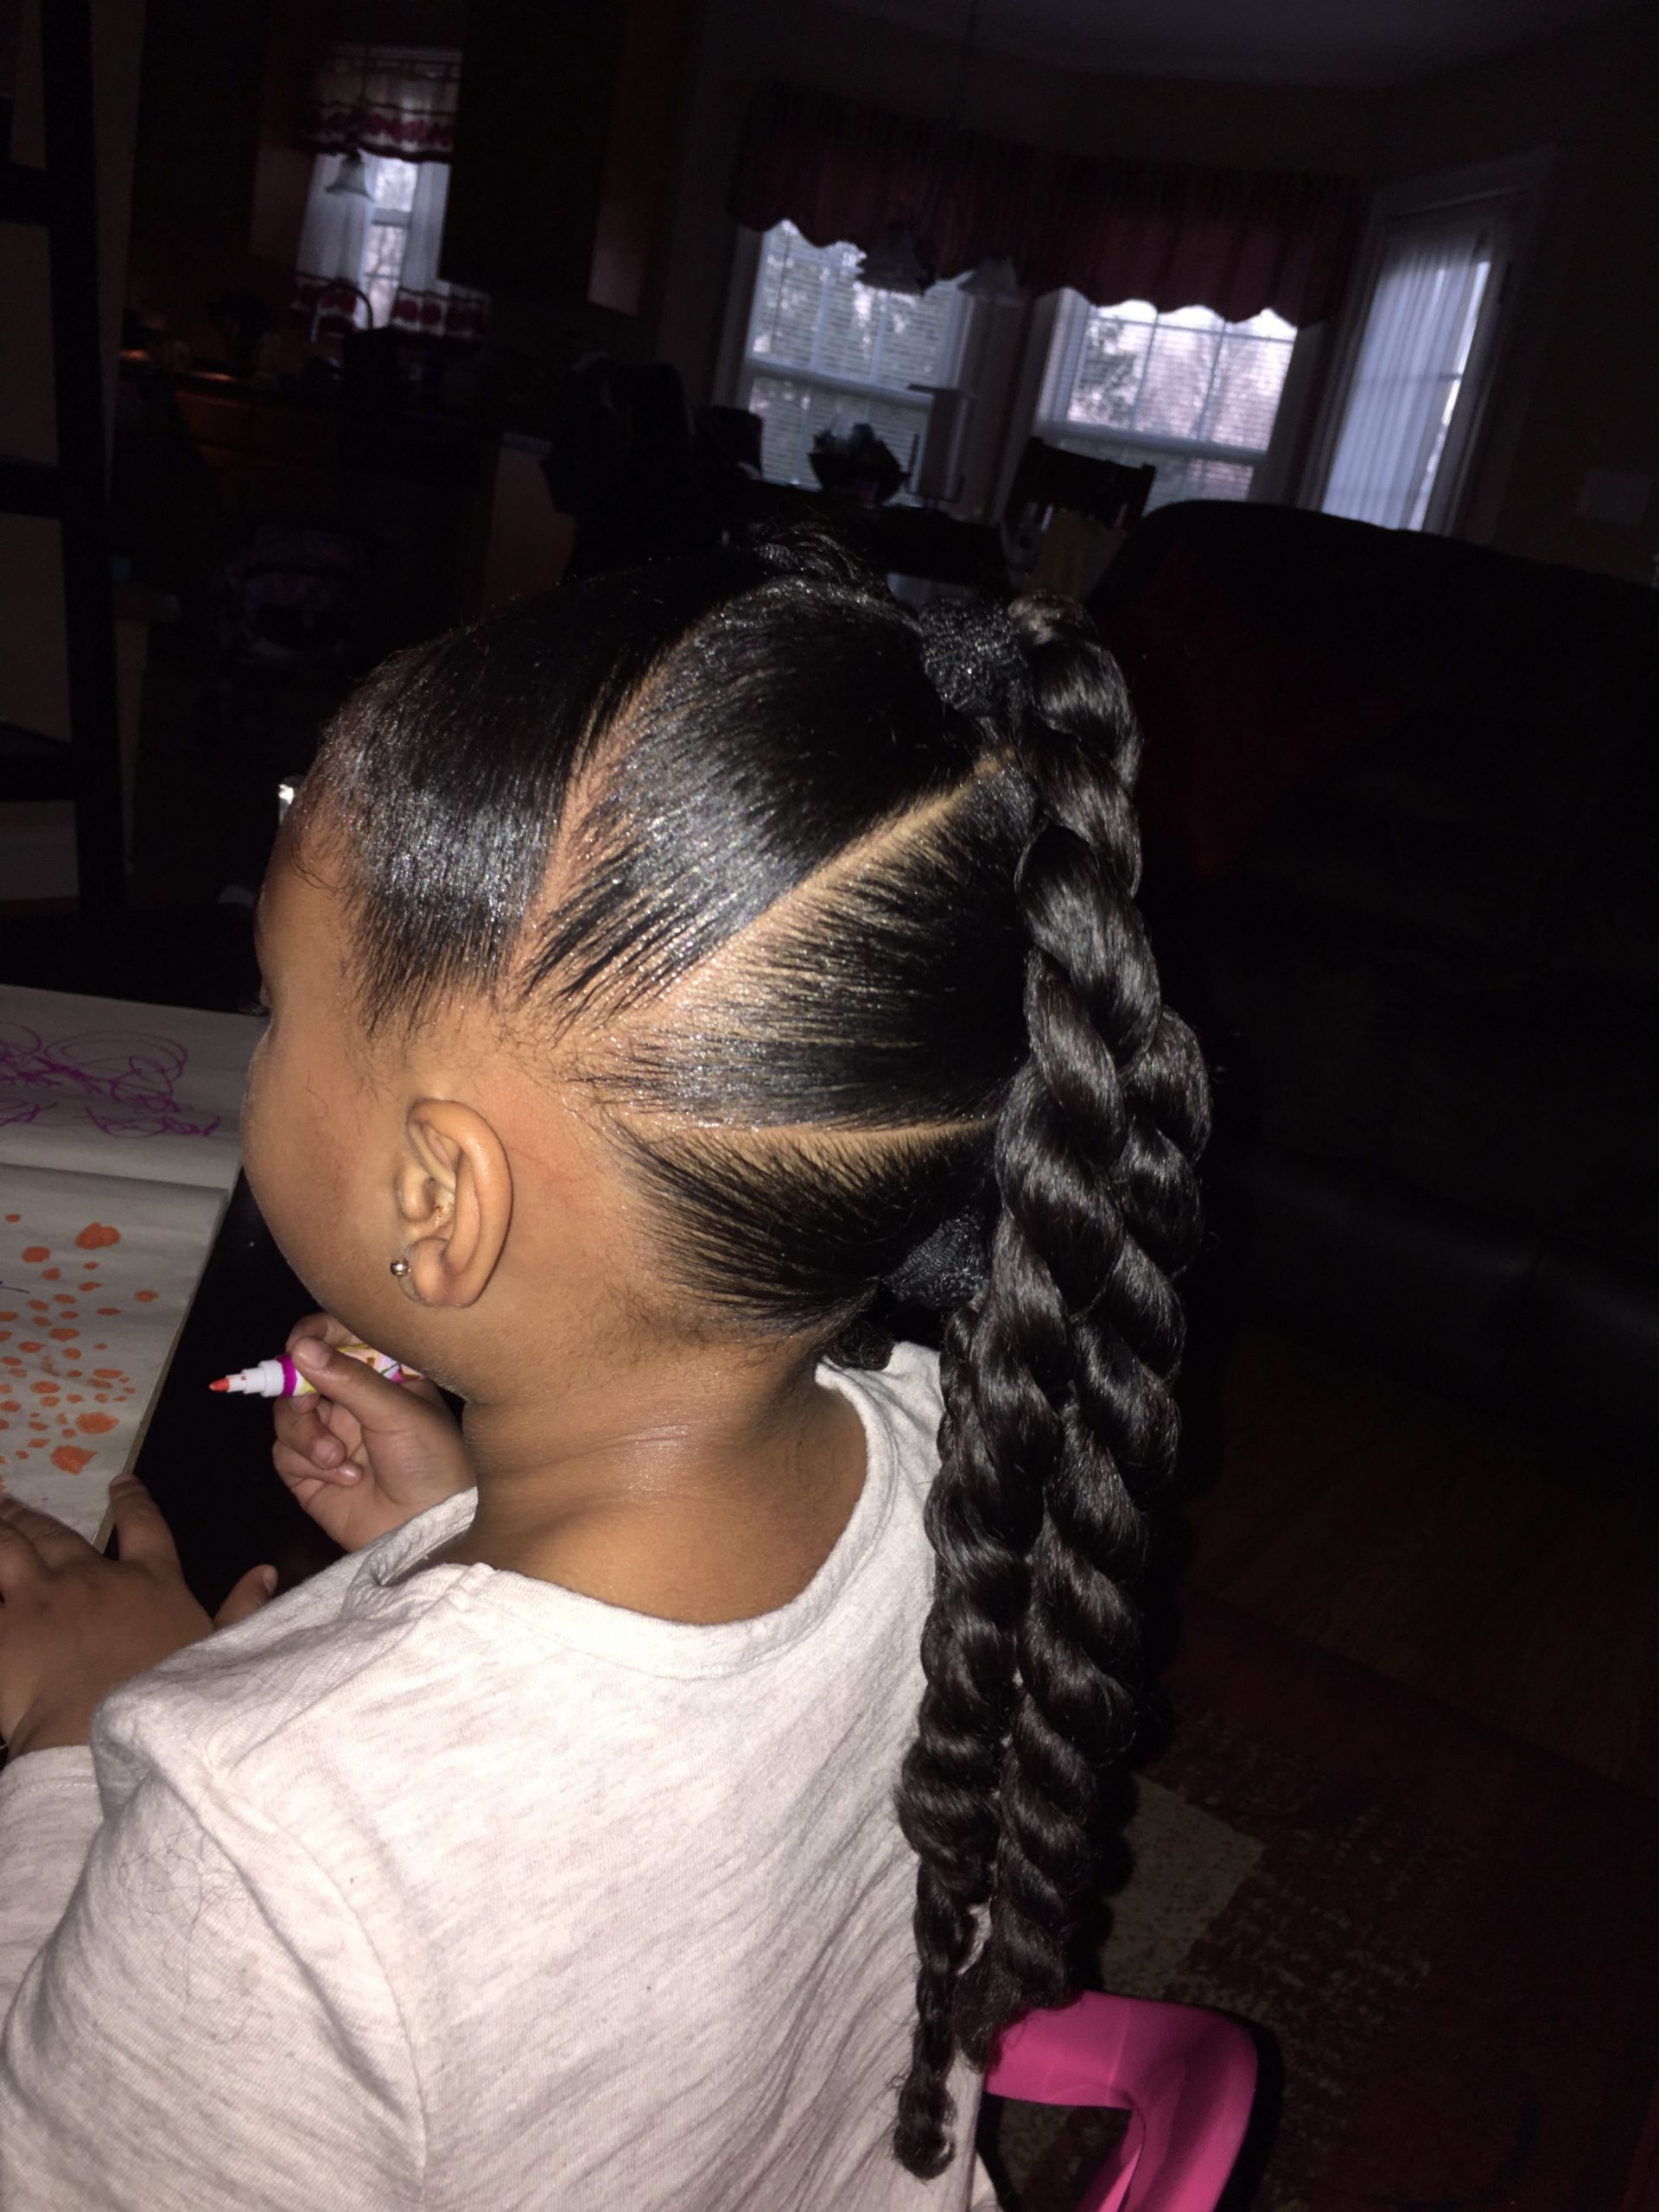 Cute hairstyles for kids hairstyleforblackwomen.net 35 scaled